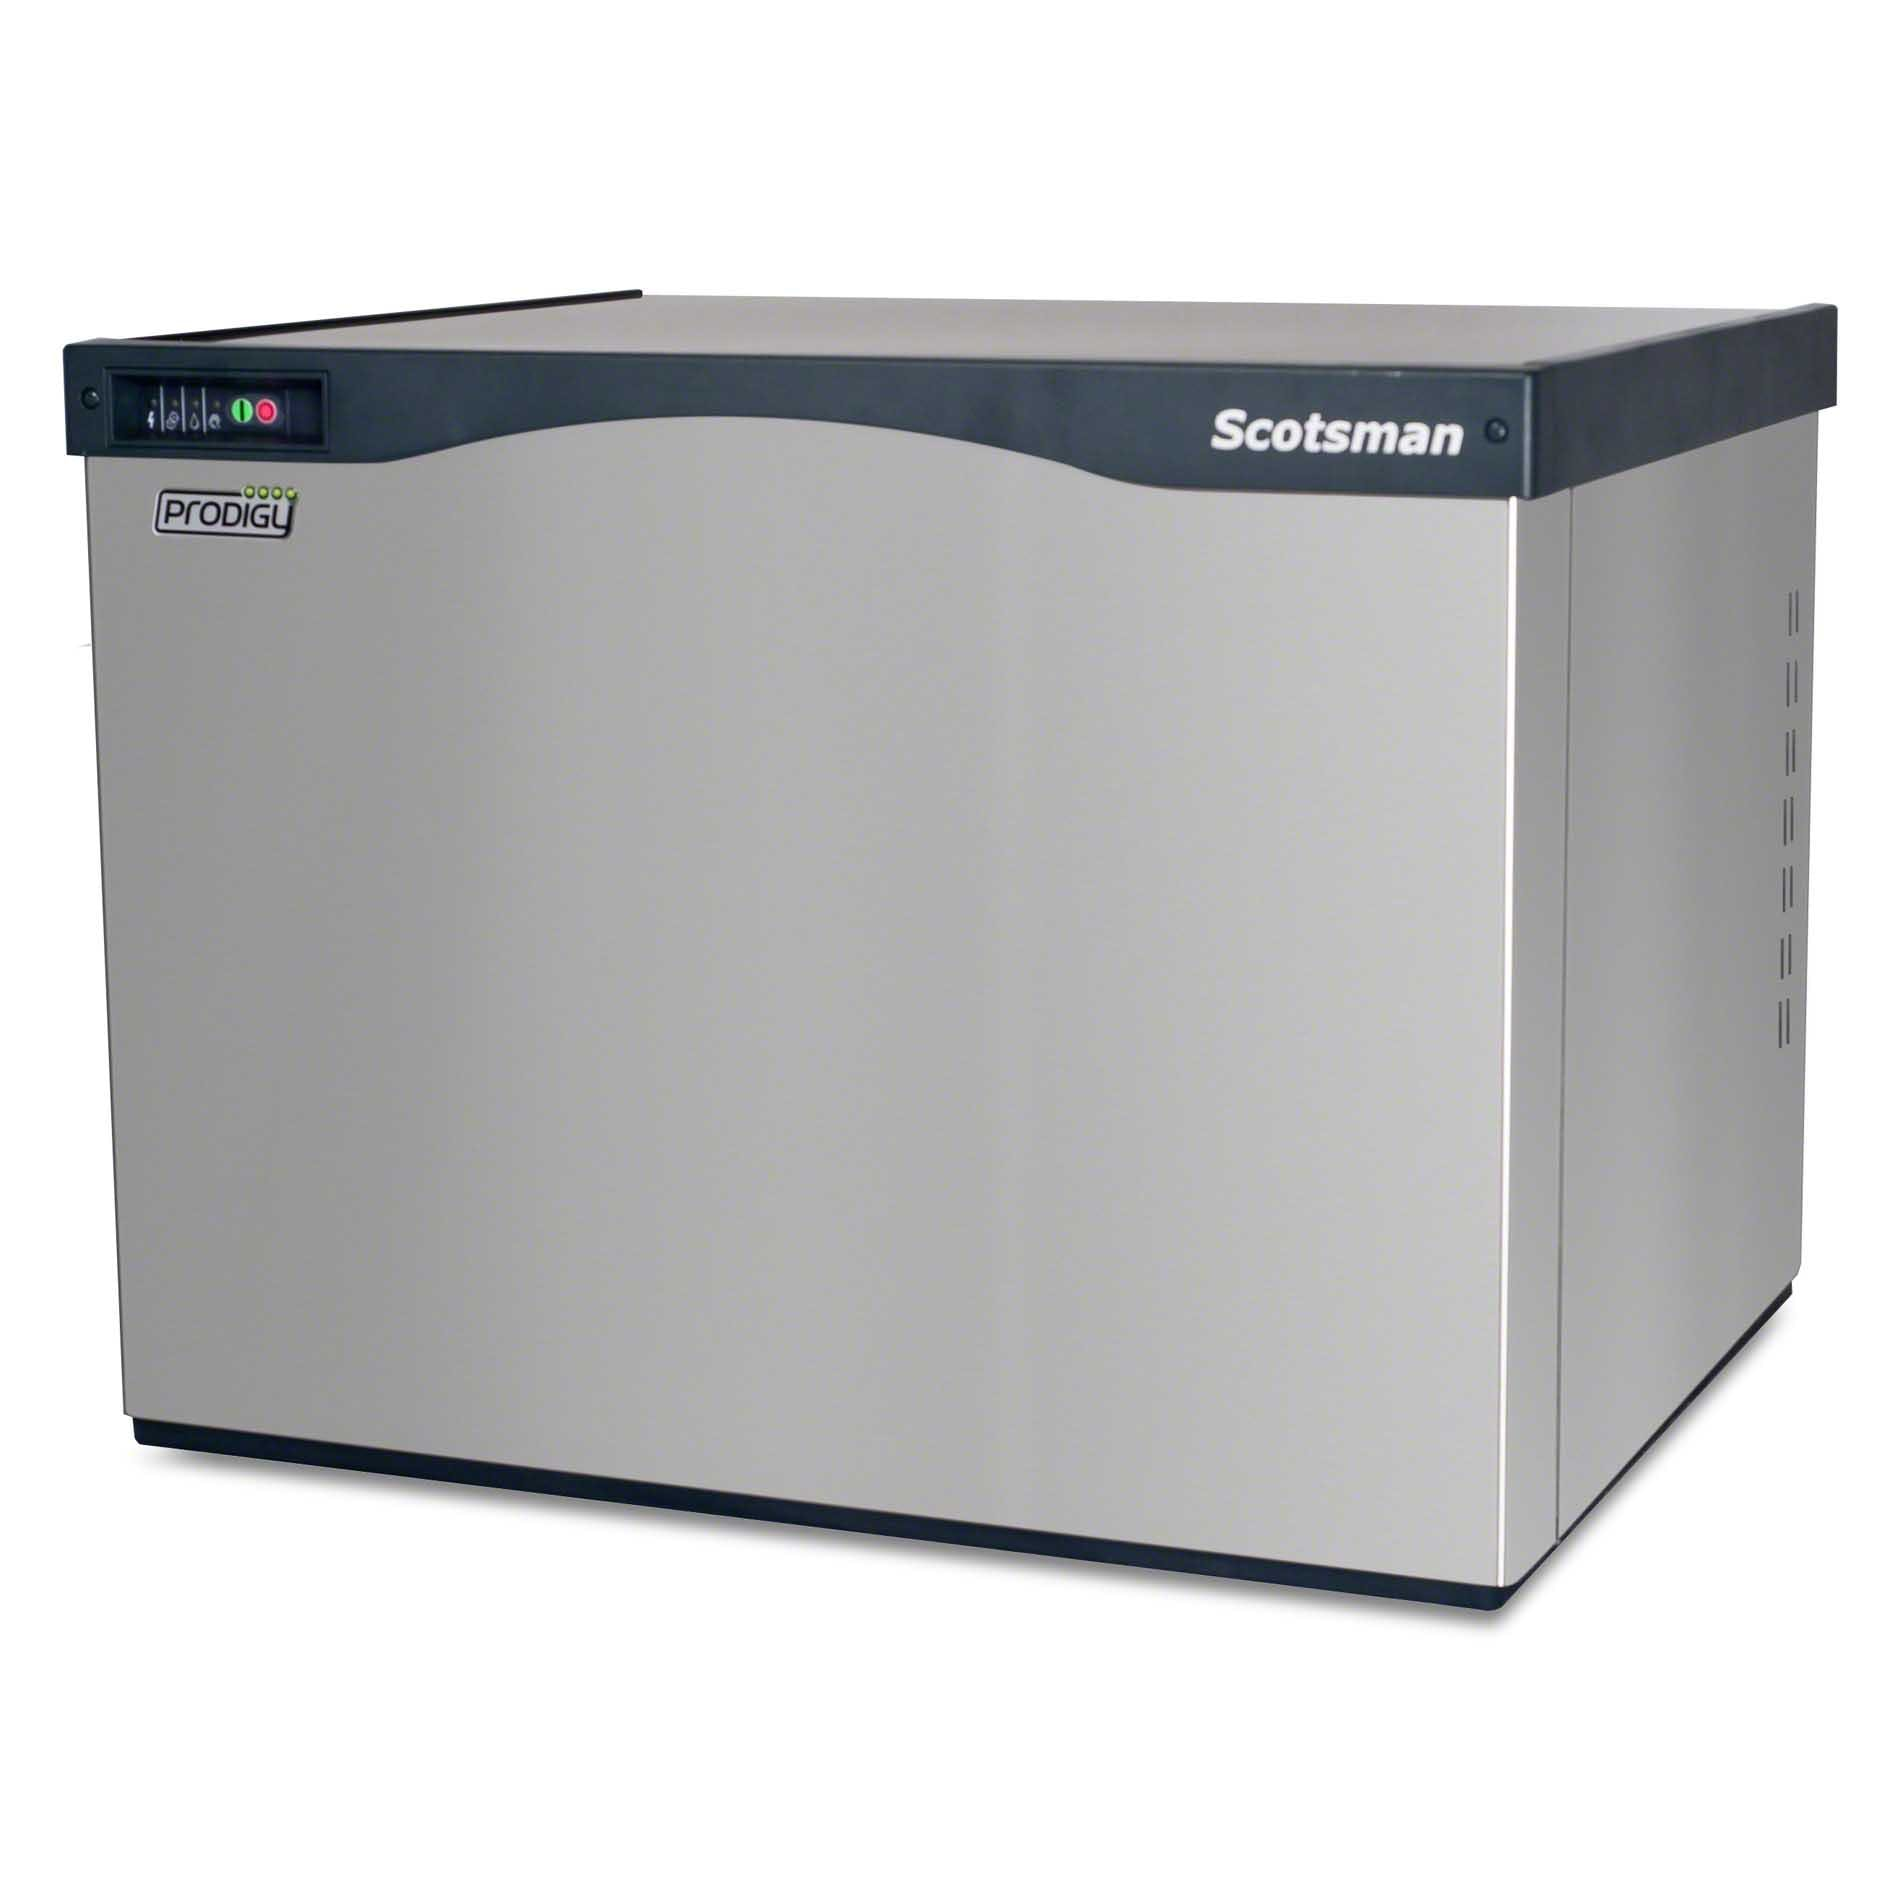 Scotsman - C0630MW-32A 722 lb Full Size Cube Ice Machine - Prodigy Series Ice machine sold by Food Service Warehouse